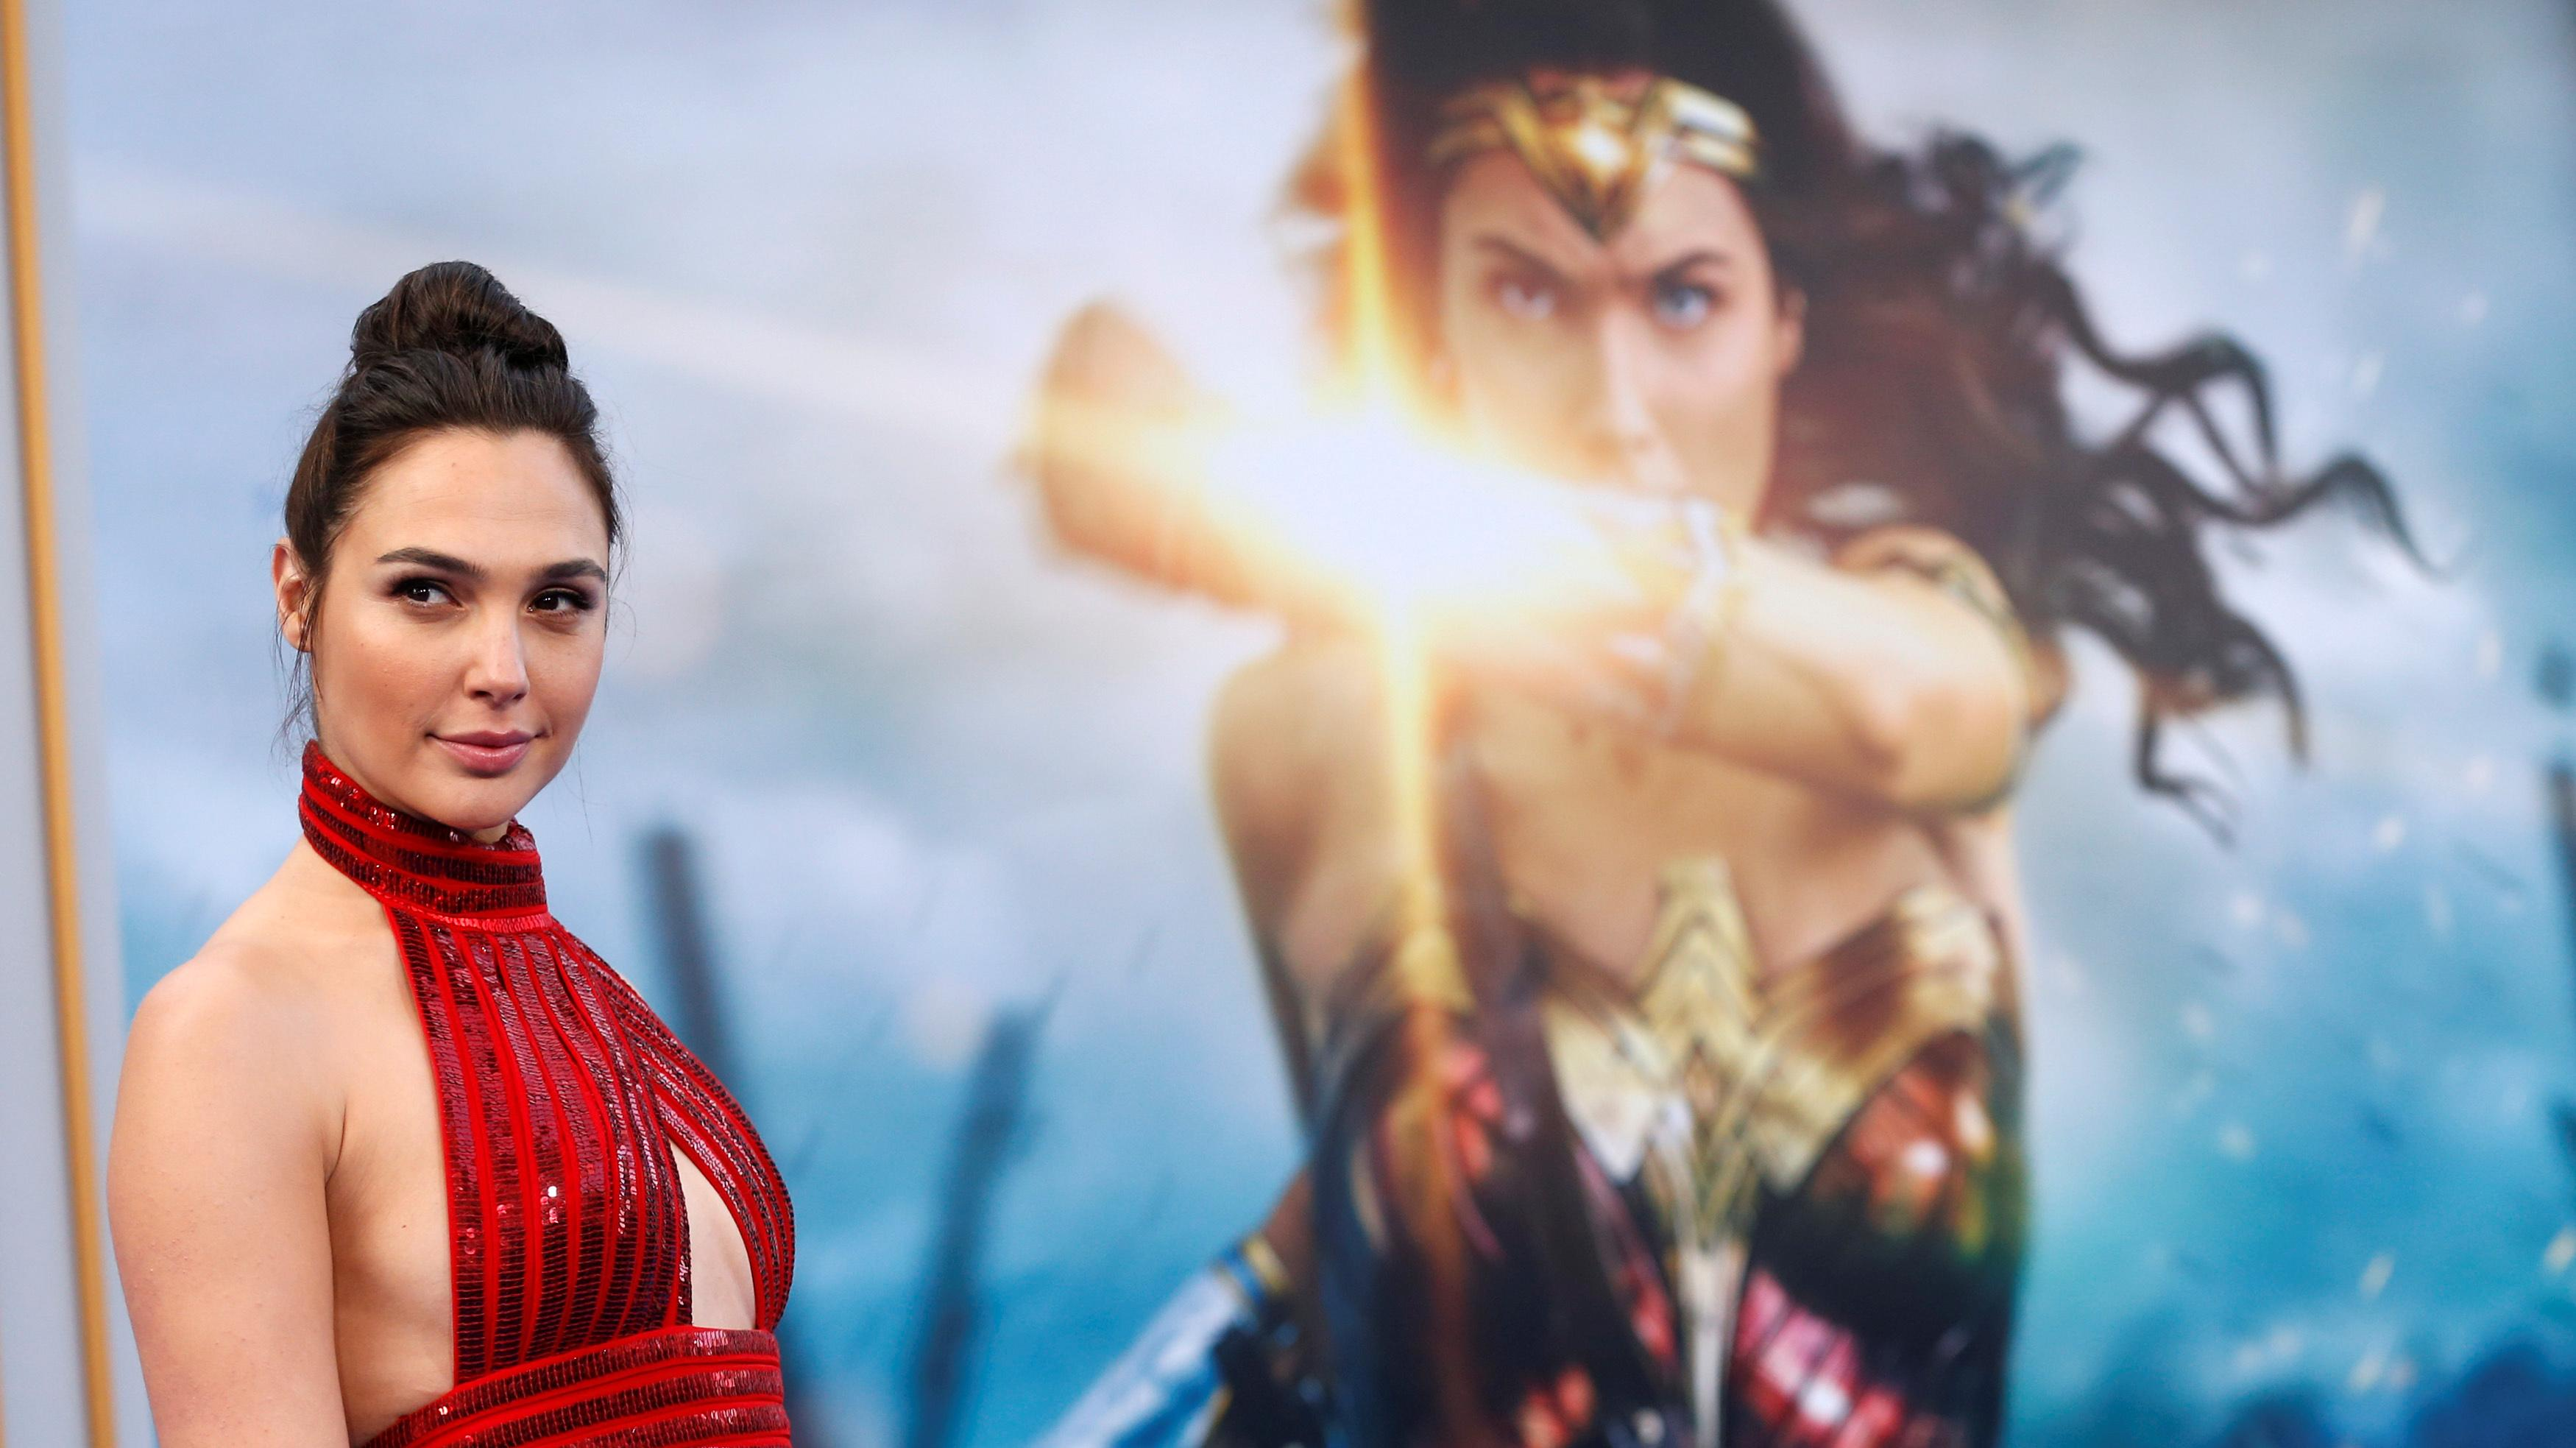 Wonder Woman actor Gal Gadot nearly gave up acting